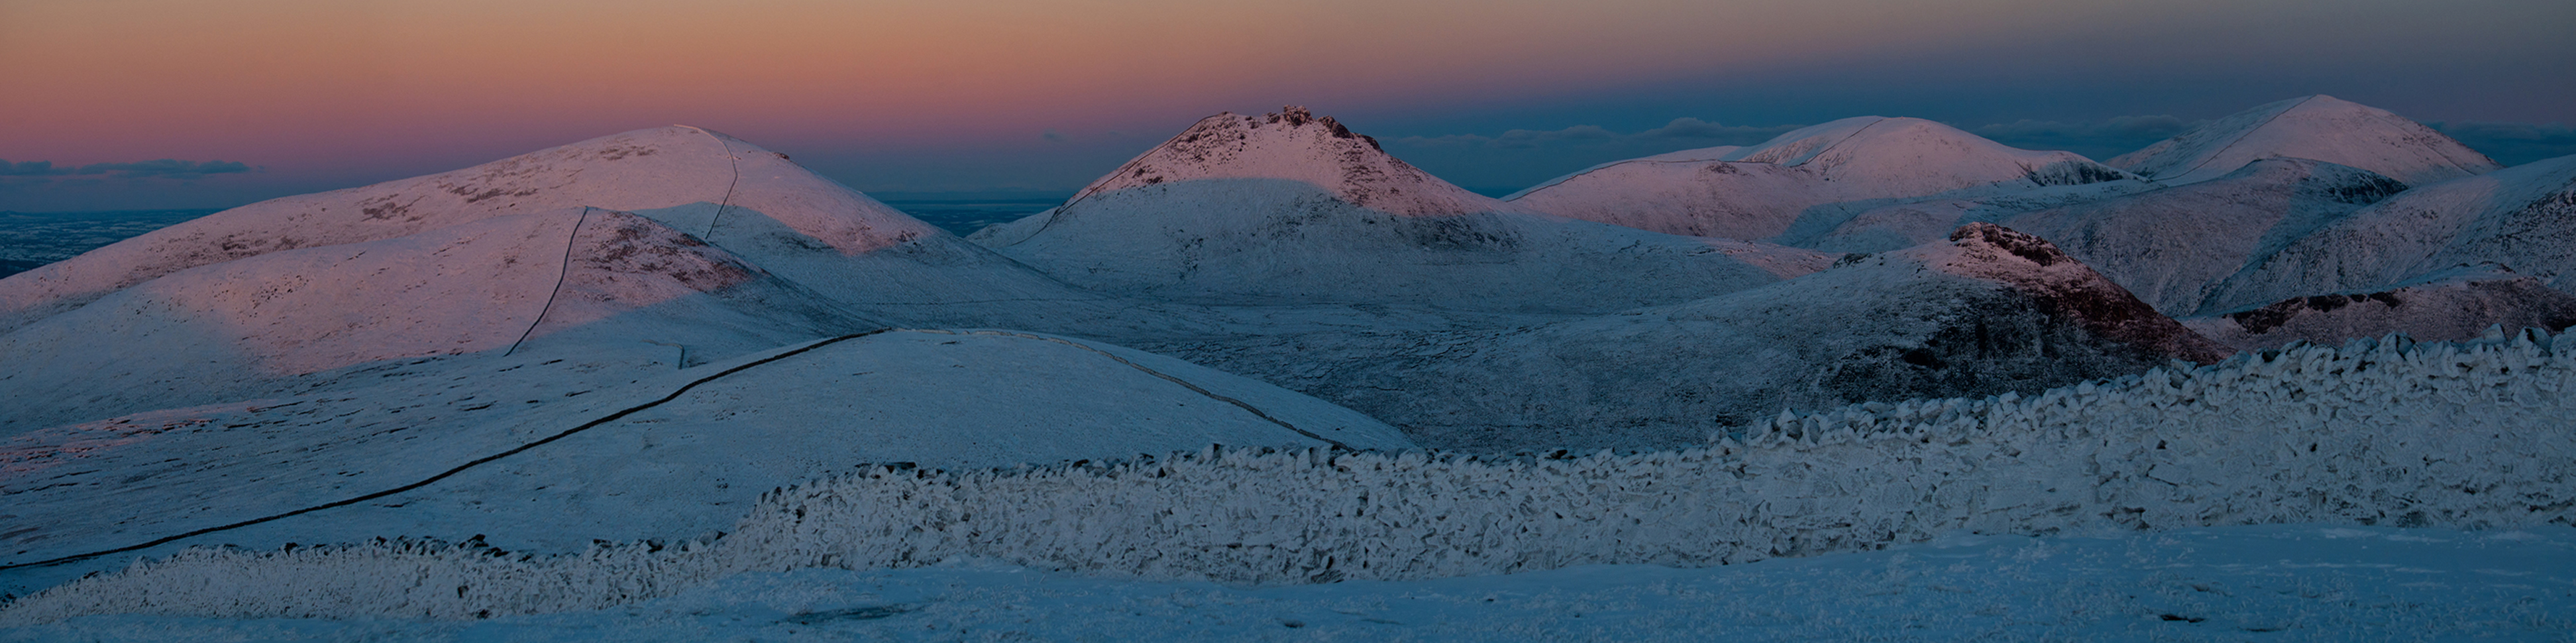 Alpenglow over the High Mournes